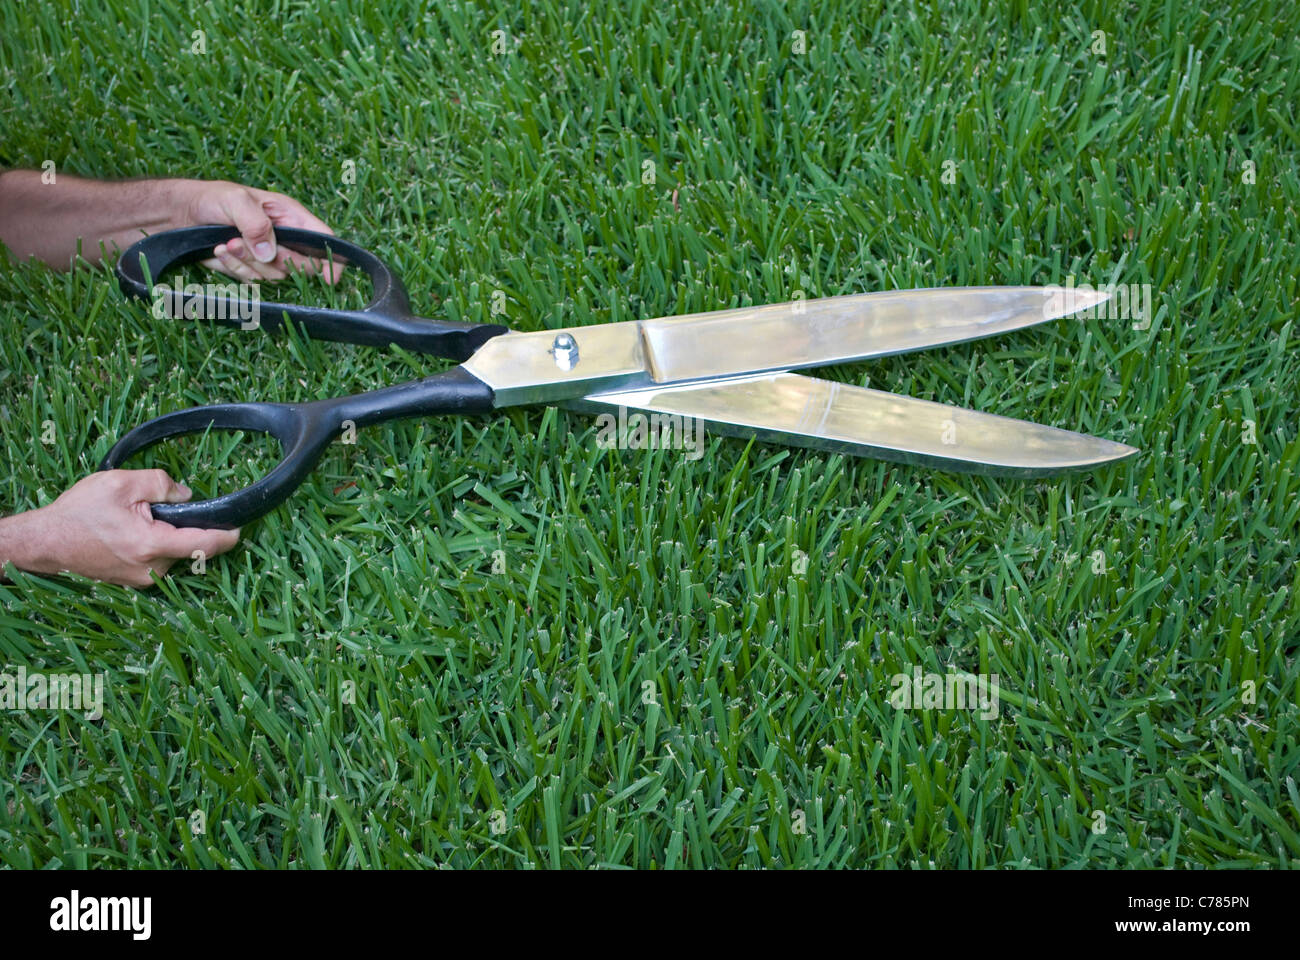 giant scissors cutting grass - Stock Image